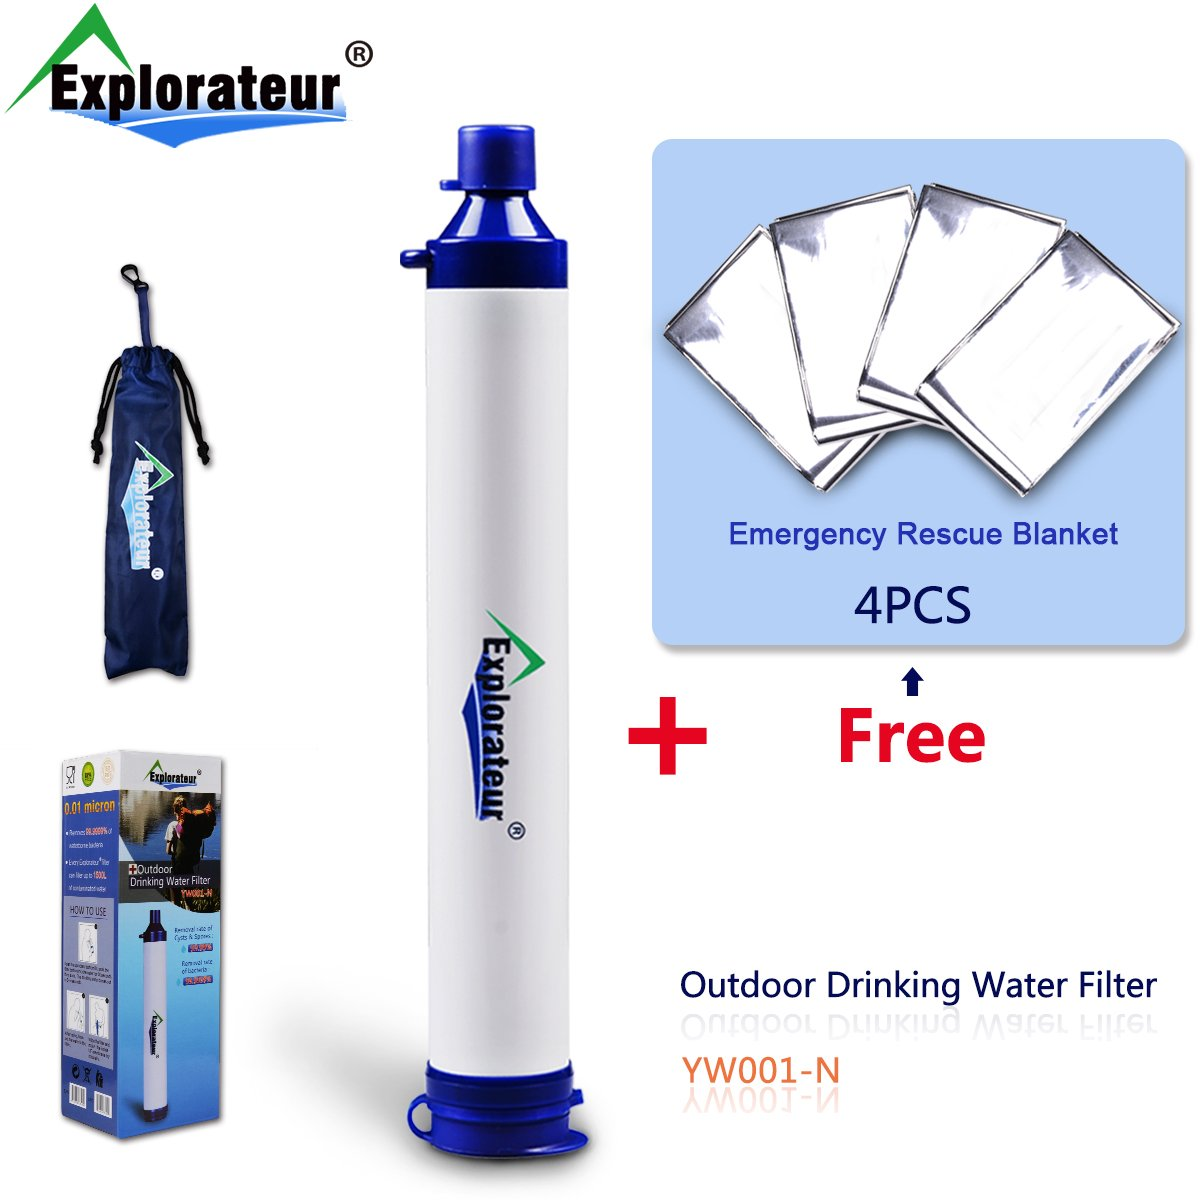 Holiday Promotions!!!Explorateur outdoor drinking water filter for camping,hiking,backpacking,Portable Water Filter with 4 PCS emergency rescue blanket FOR FREE